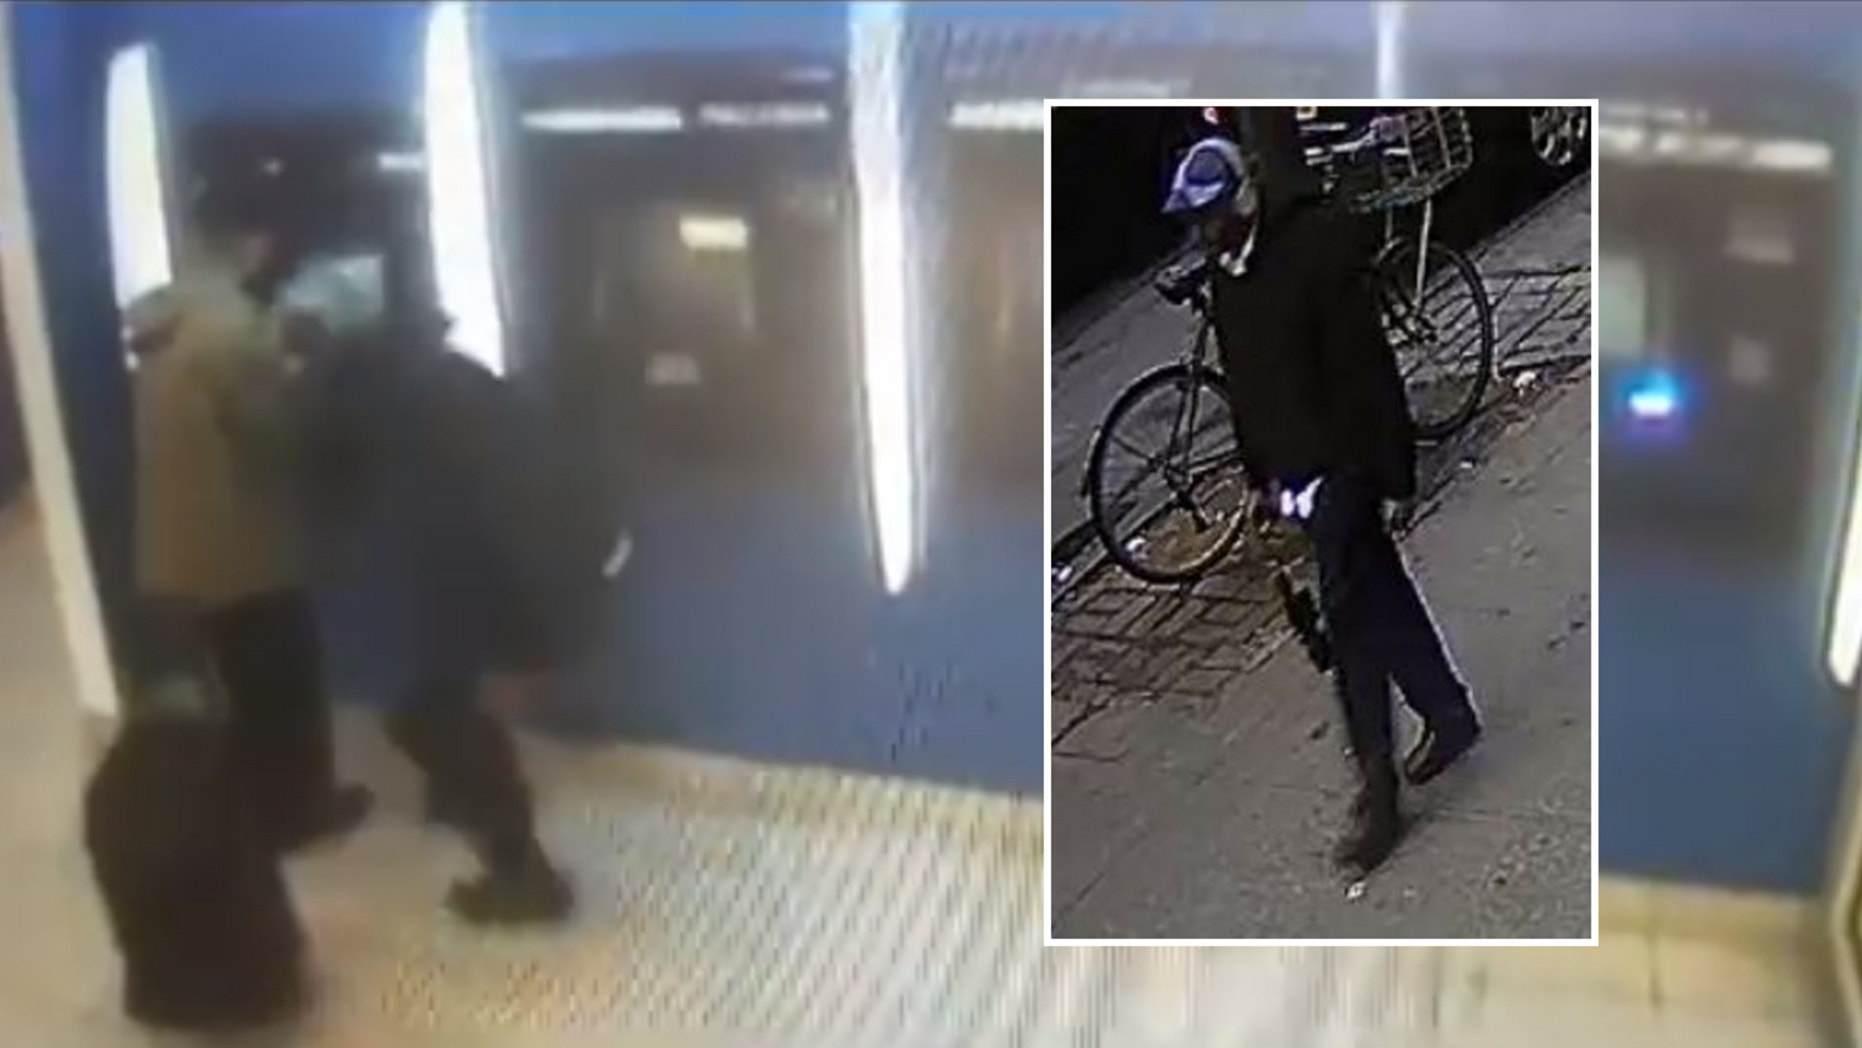 An 87-year-old professor is in extremely critical condition after being attacked inside a New York City bank.